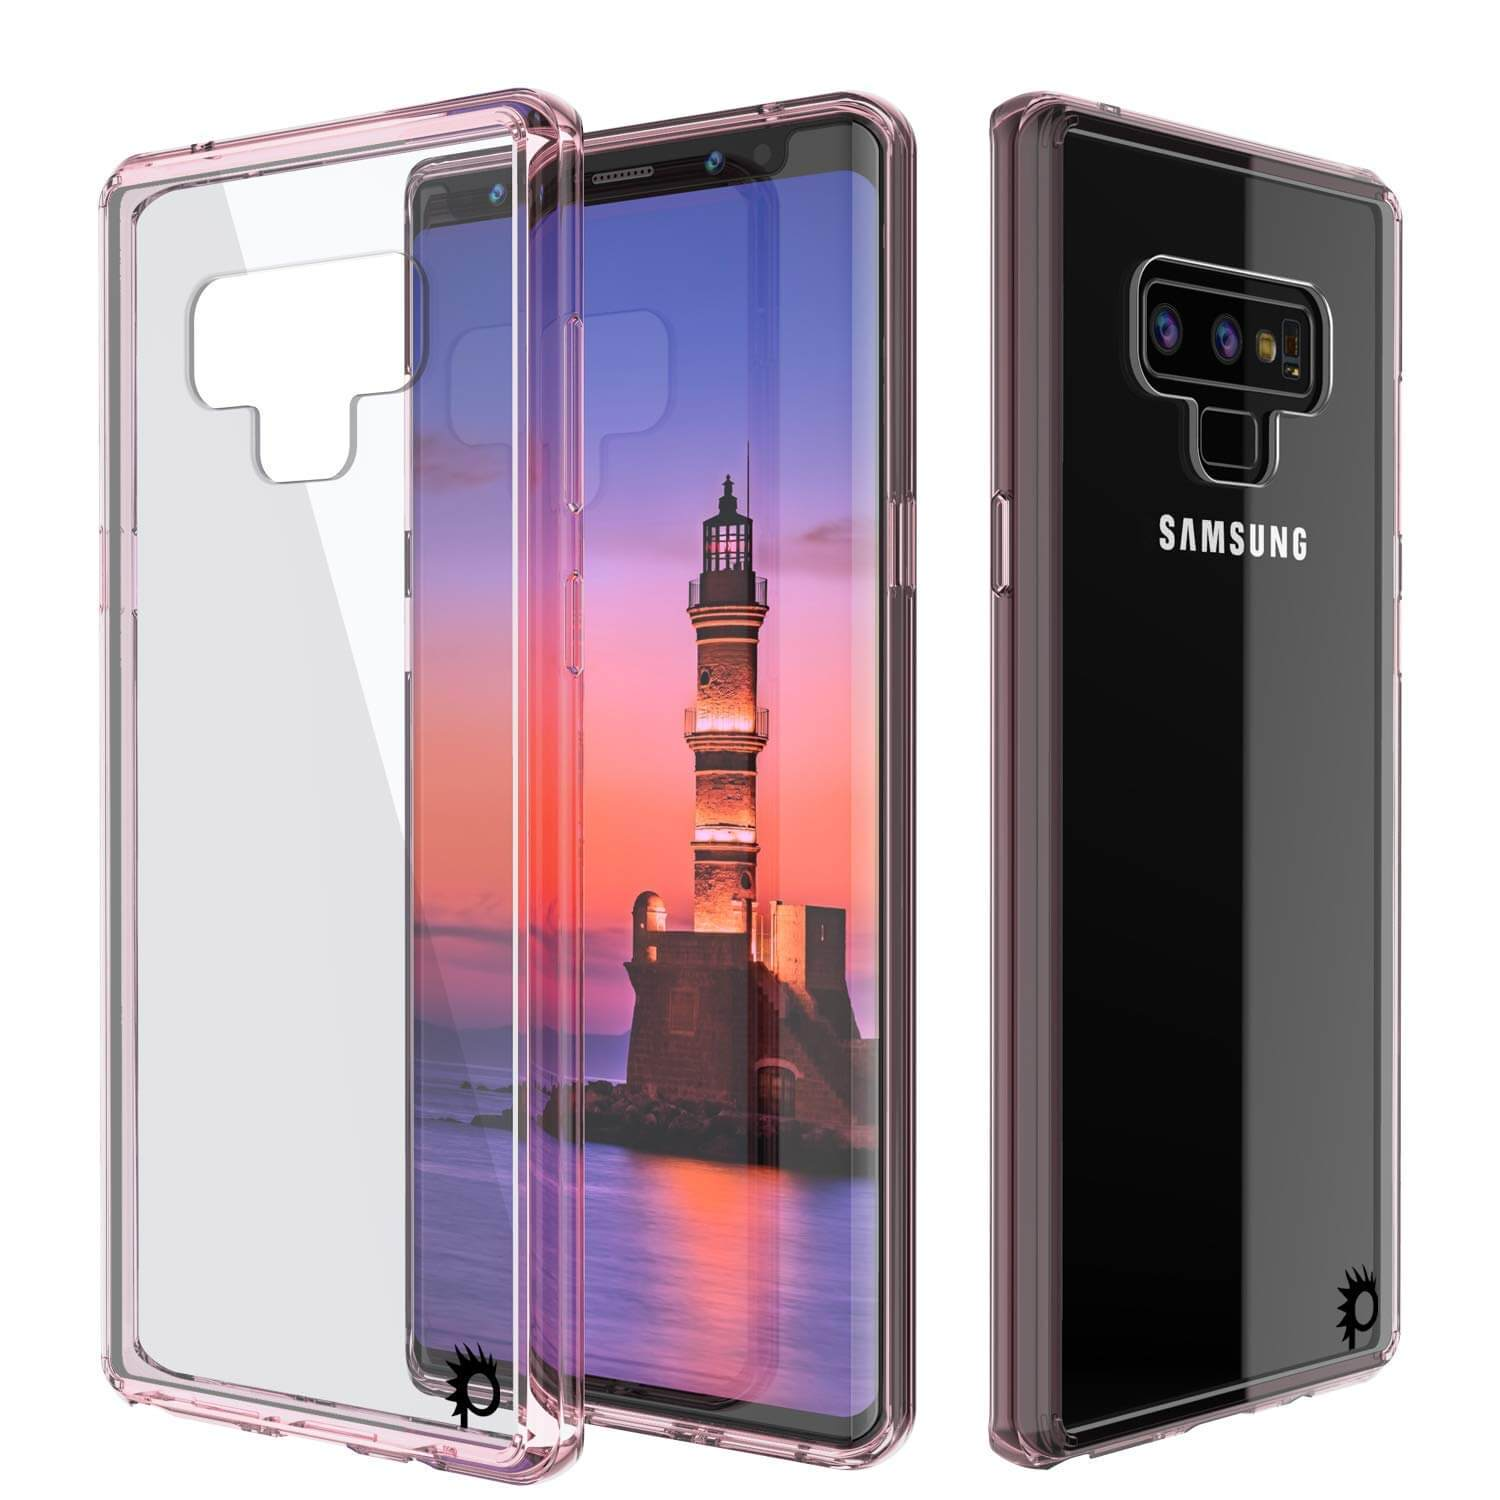 Galaxy Note 9 Punkcase Lucid-2.0 Series Slim Fit Armor Crystal Pink Case Cover